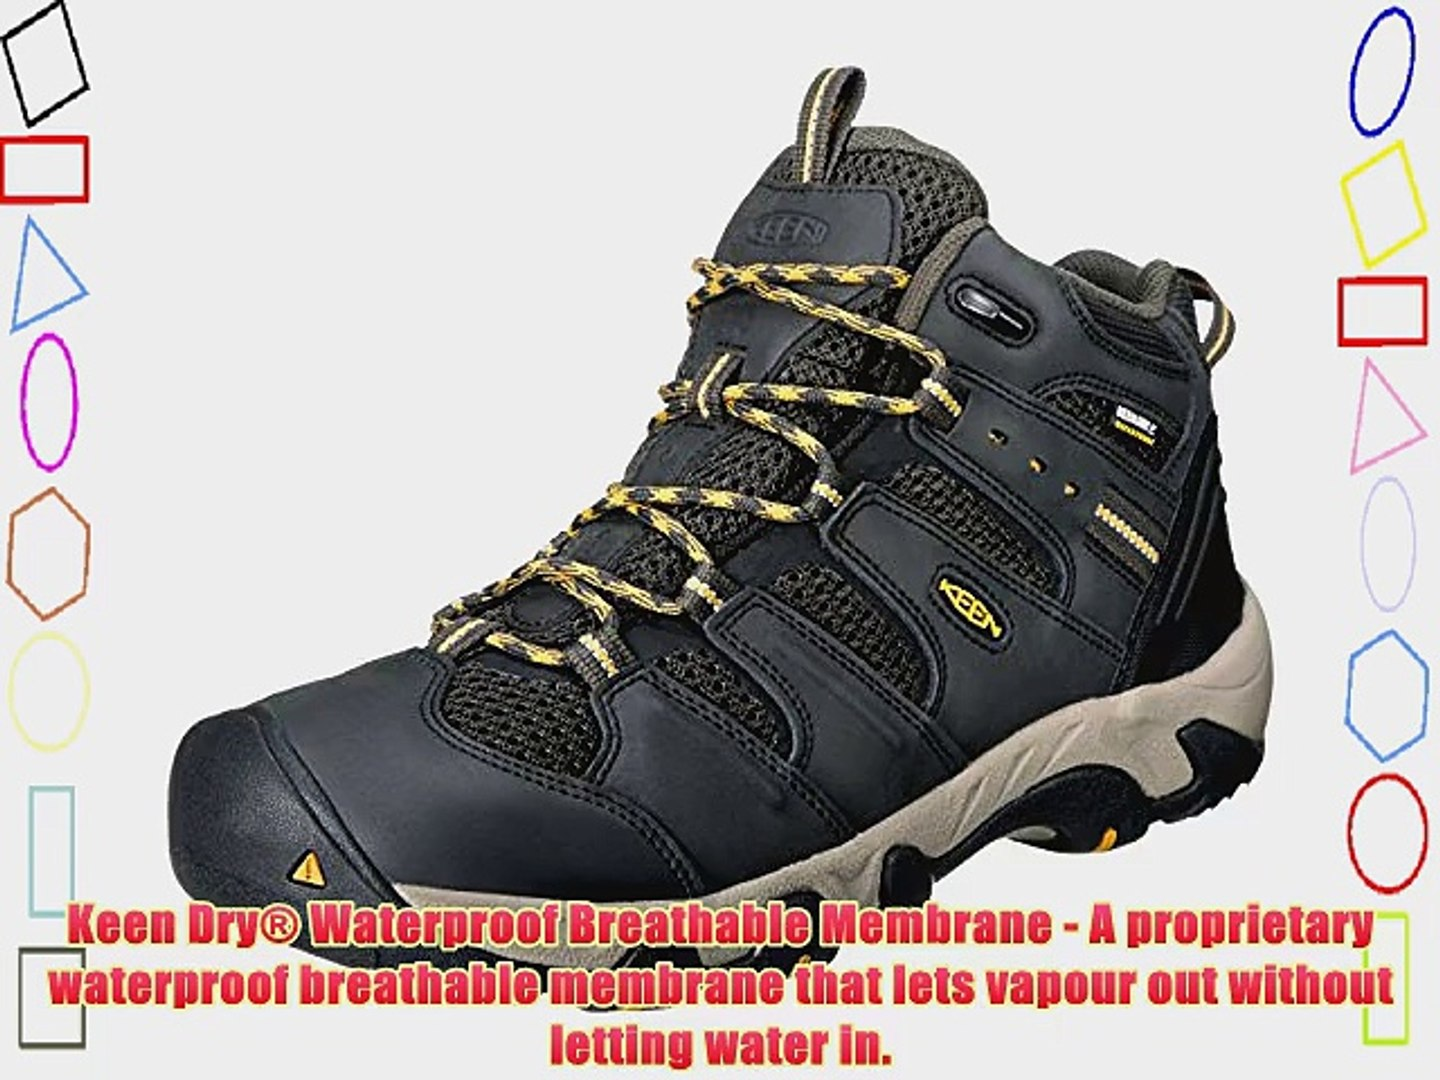 57914c76a37 Keen Koven Mid WP Walking Boots - SS15 - 11